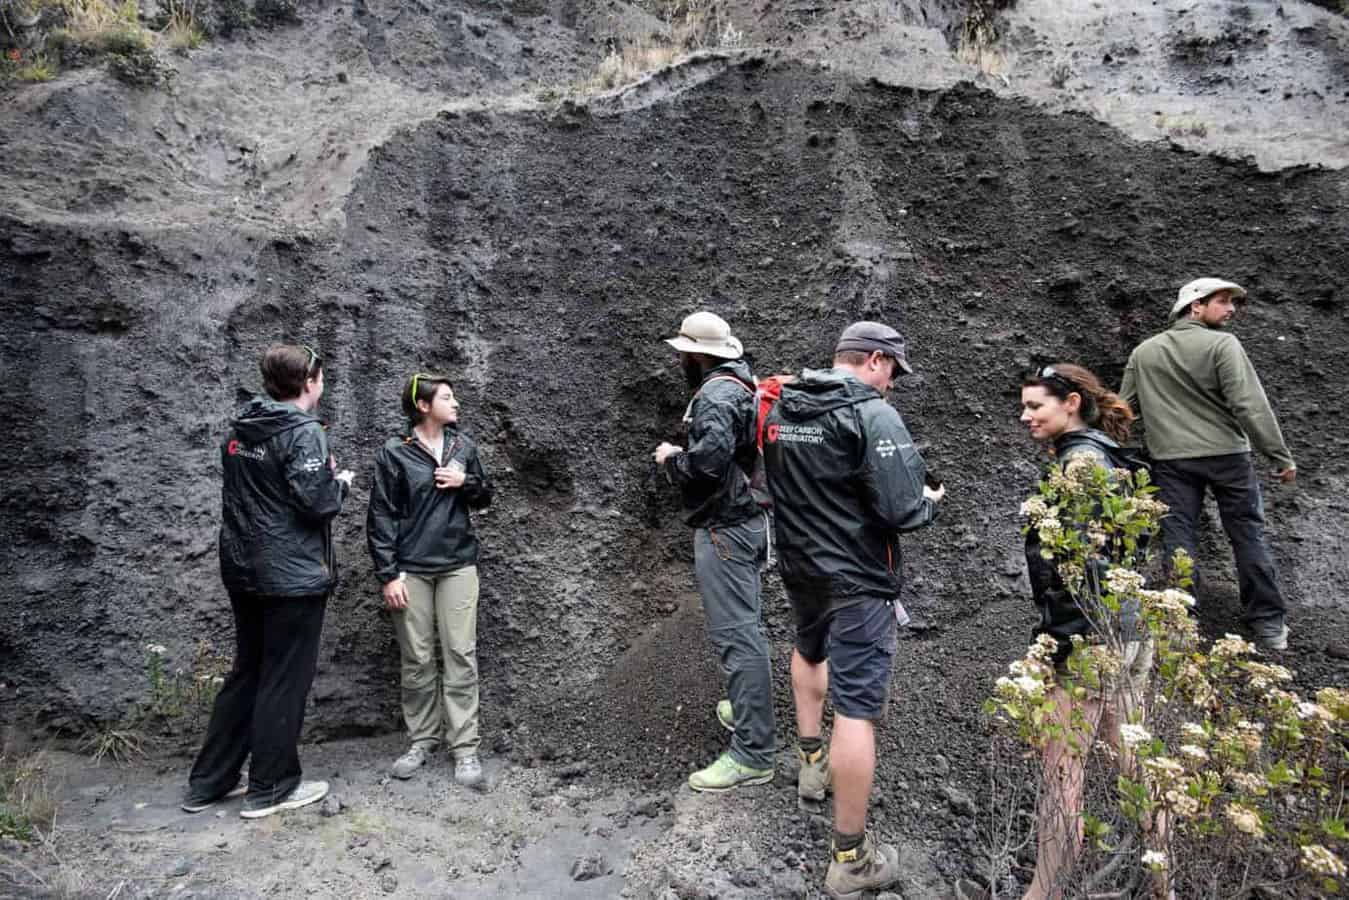 Microbes could influence earth's geological processes as much as volcanoes